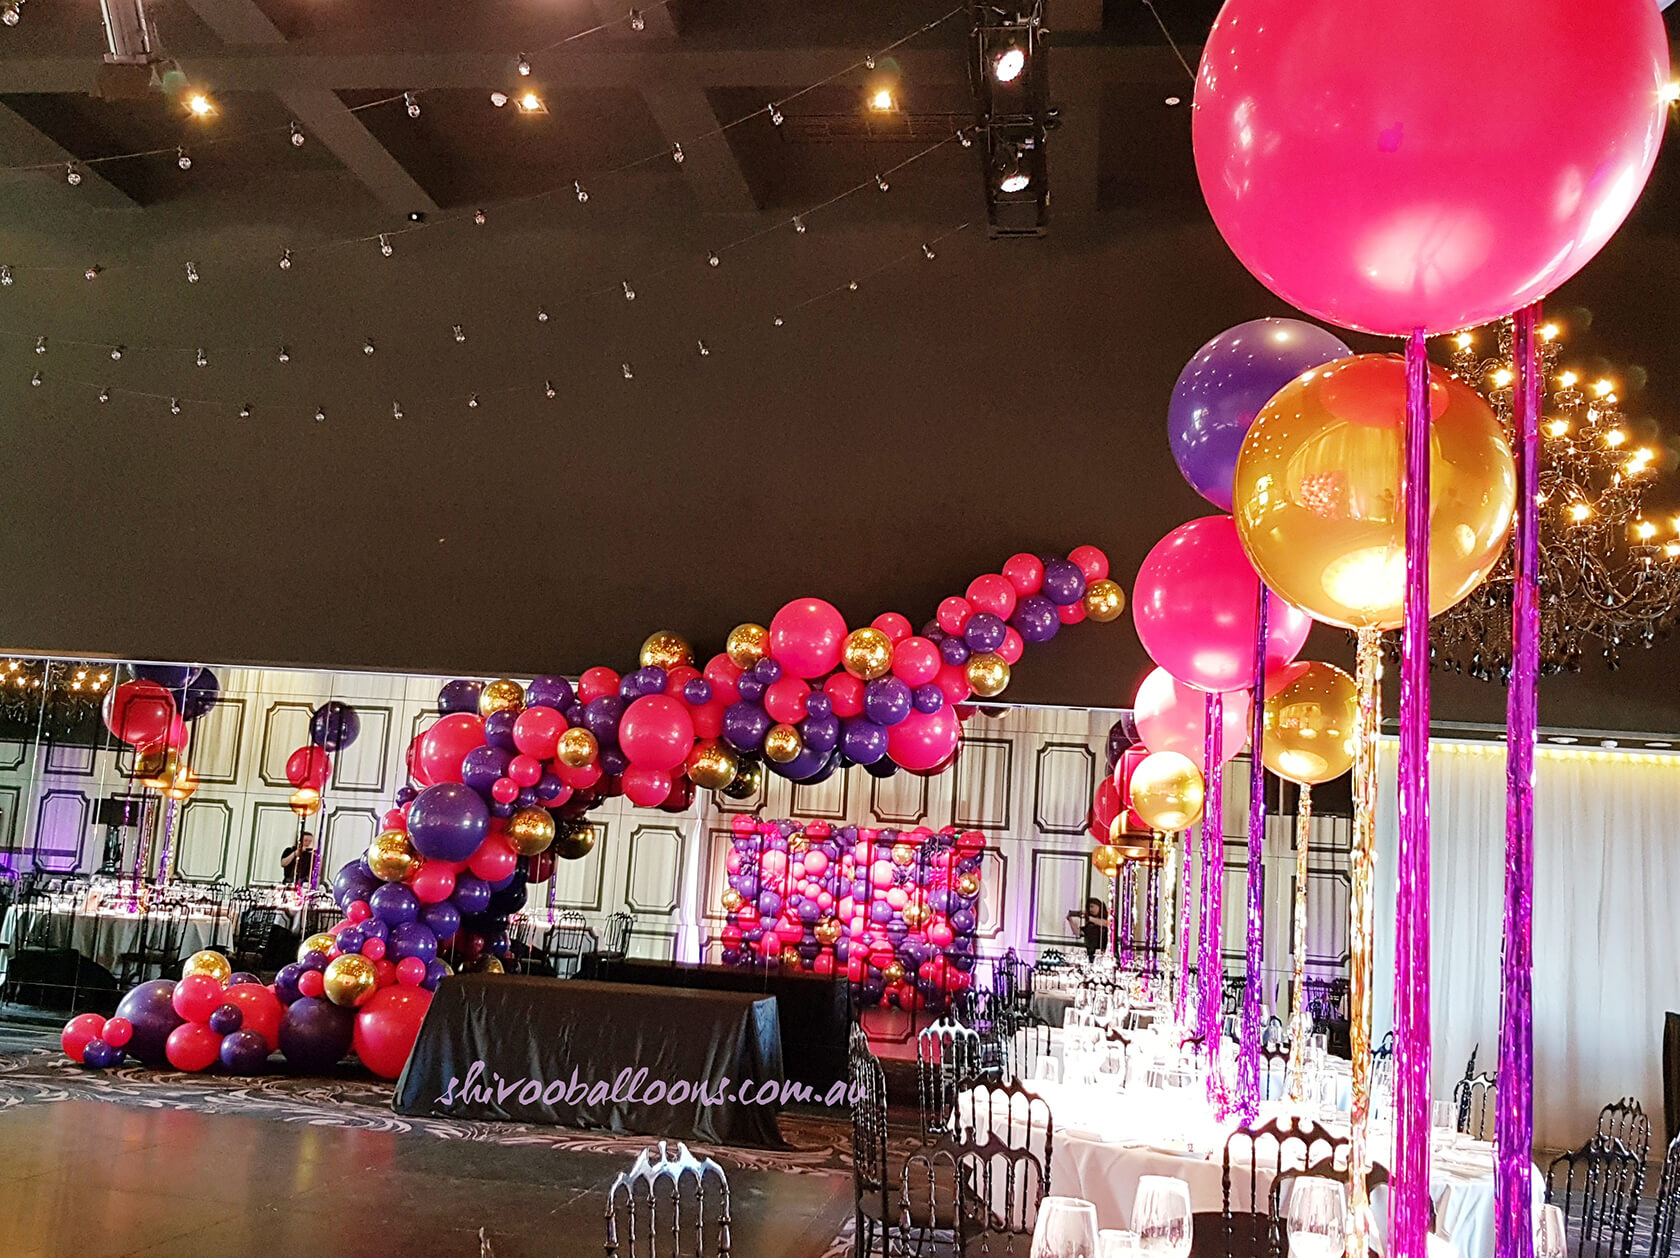 See Our Events! - image CE-46 on https://shivooballoons.com.au